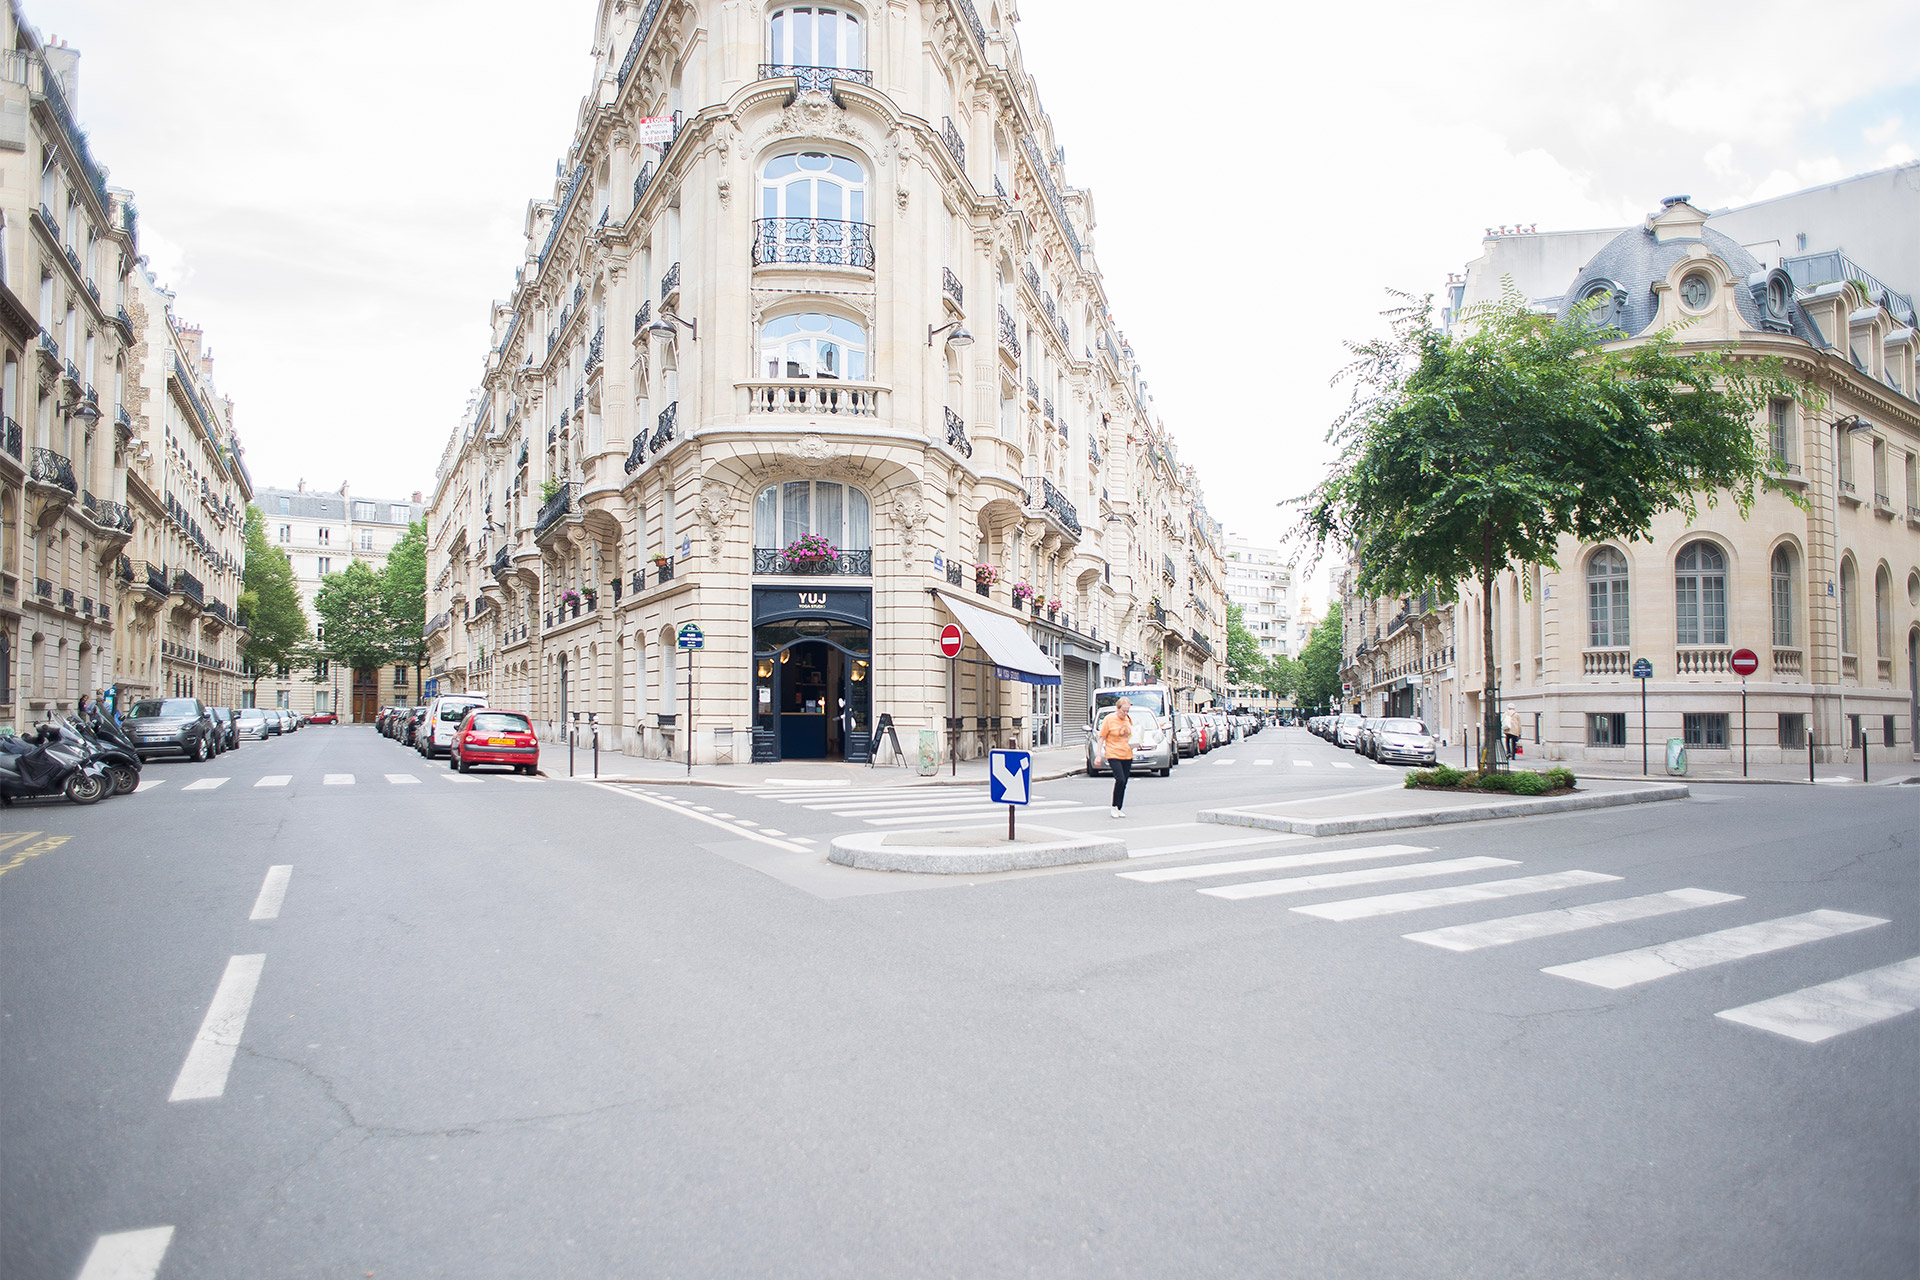 Explore one of our favorite neighborhoods the 7th arrondissement